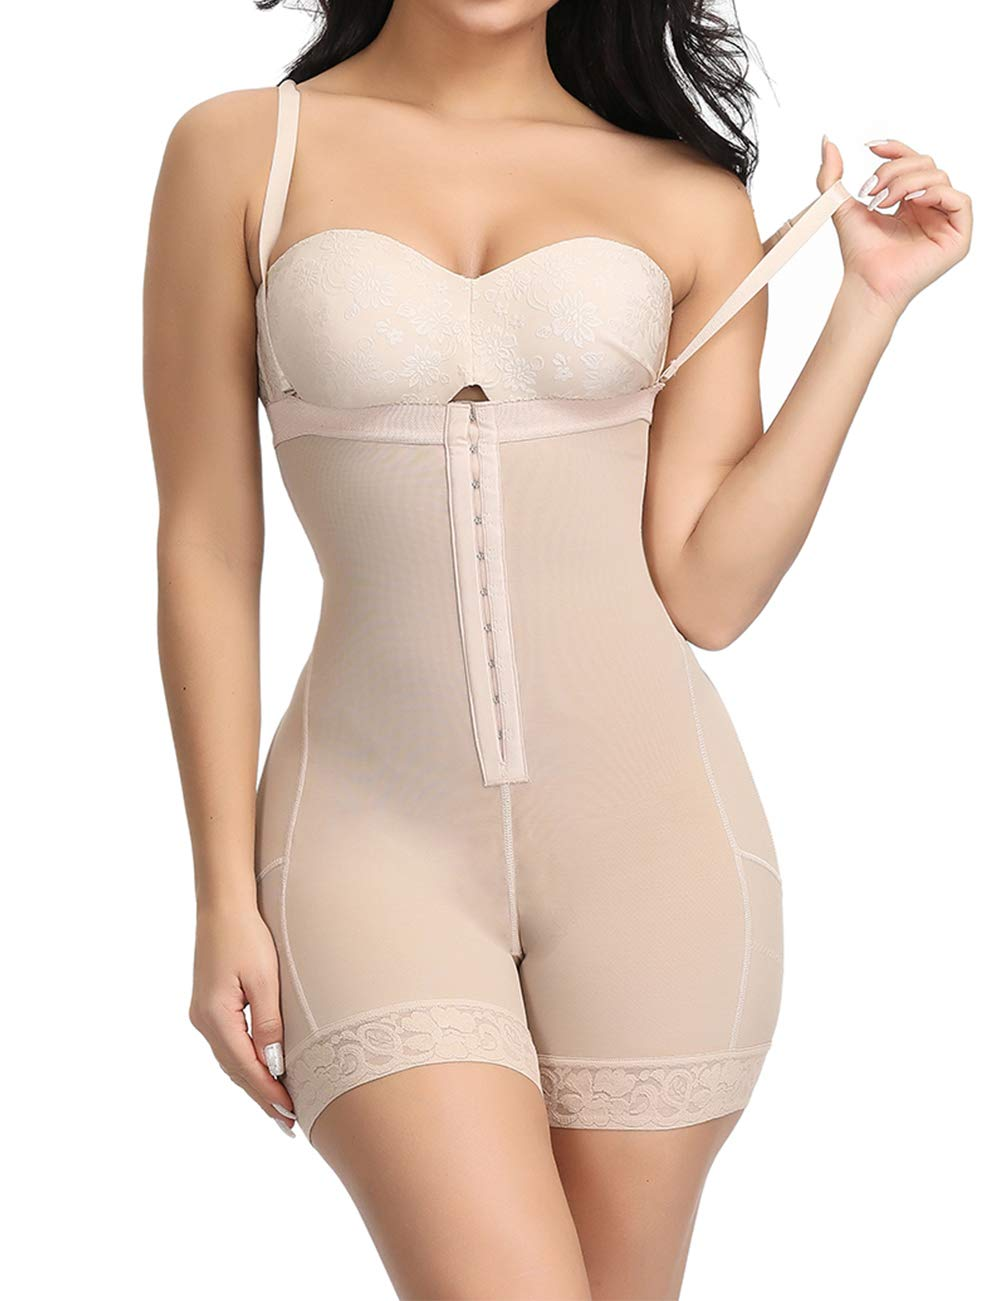 Lover-Beauty Women Thigh Slimmer High Waist Body Shaper Butt Lifter Firm Control Shapewear